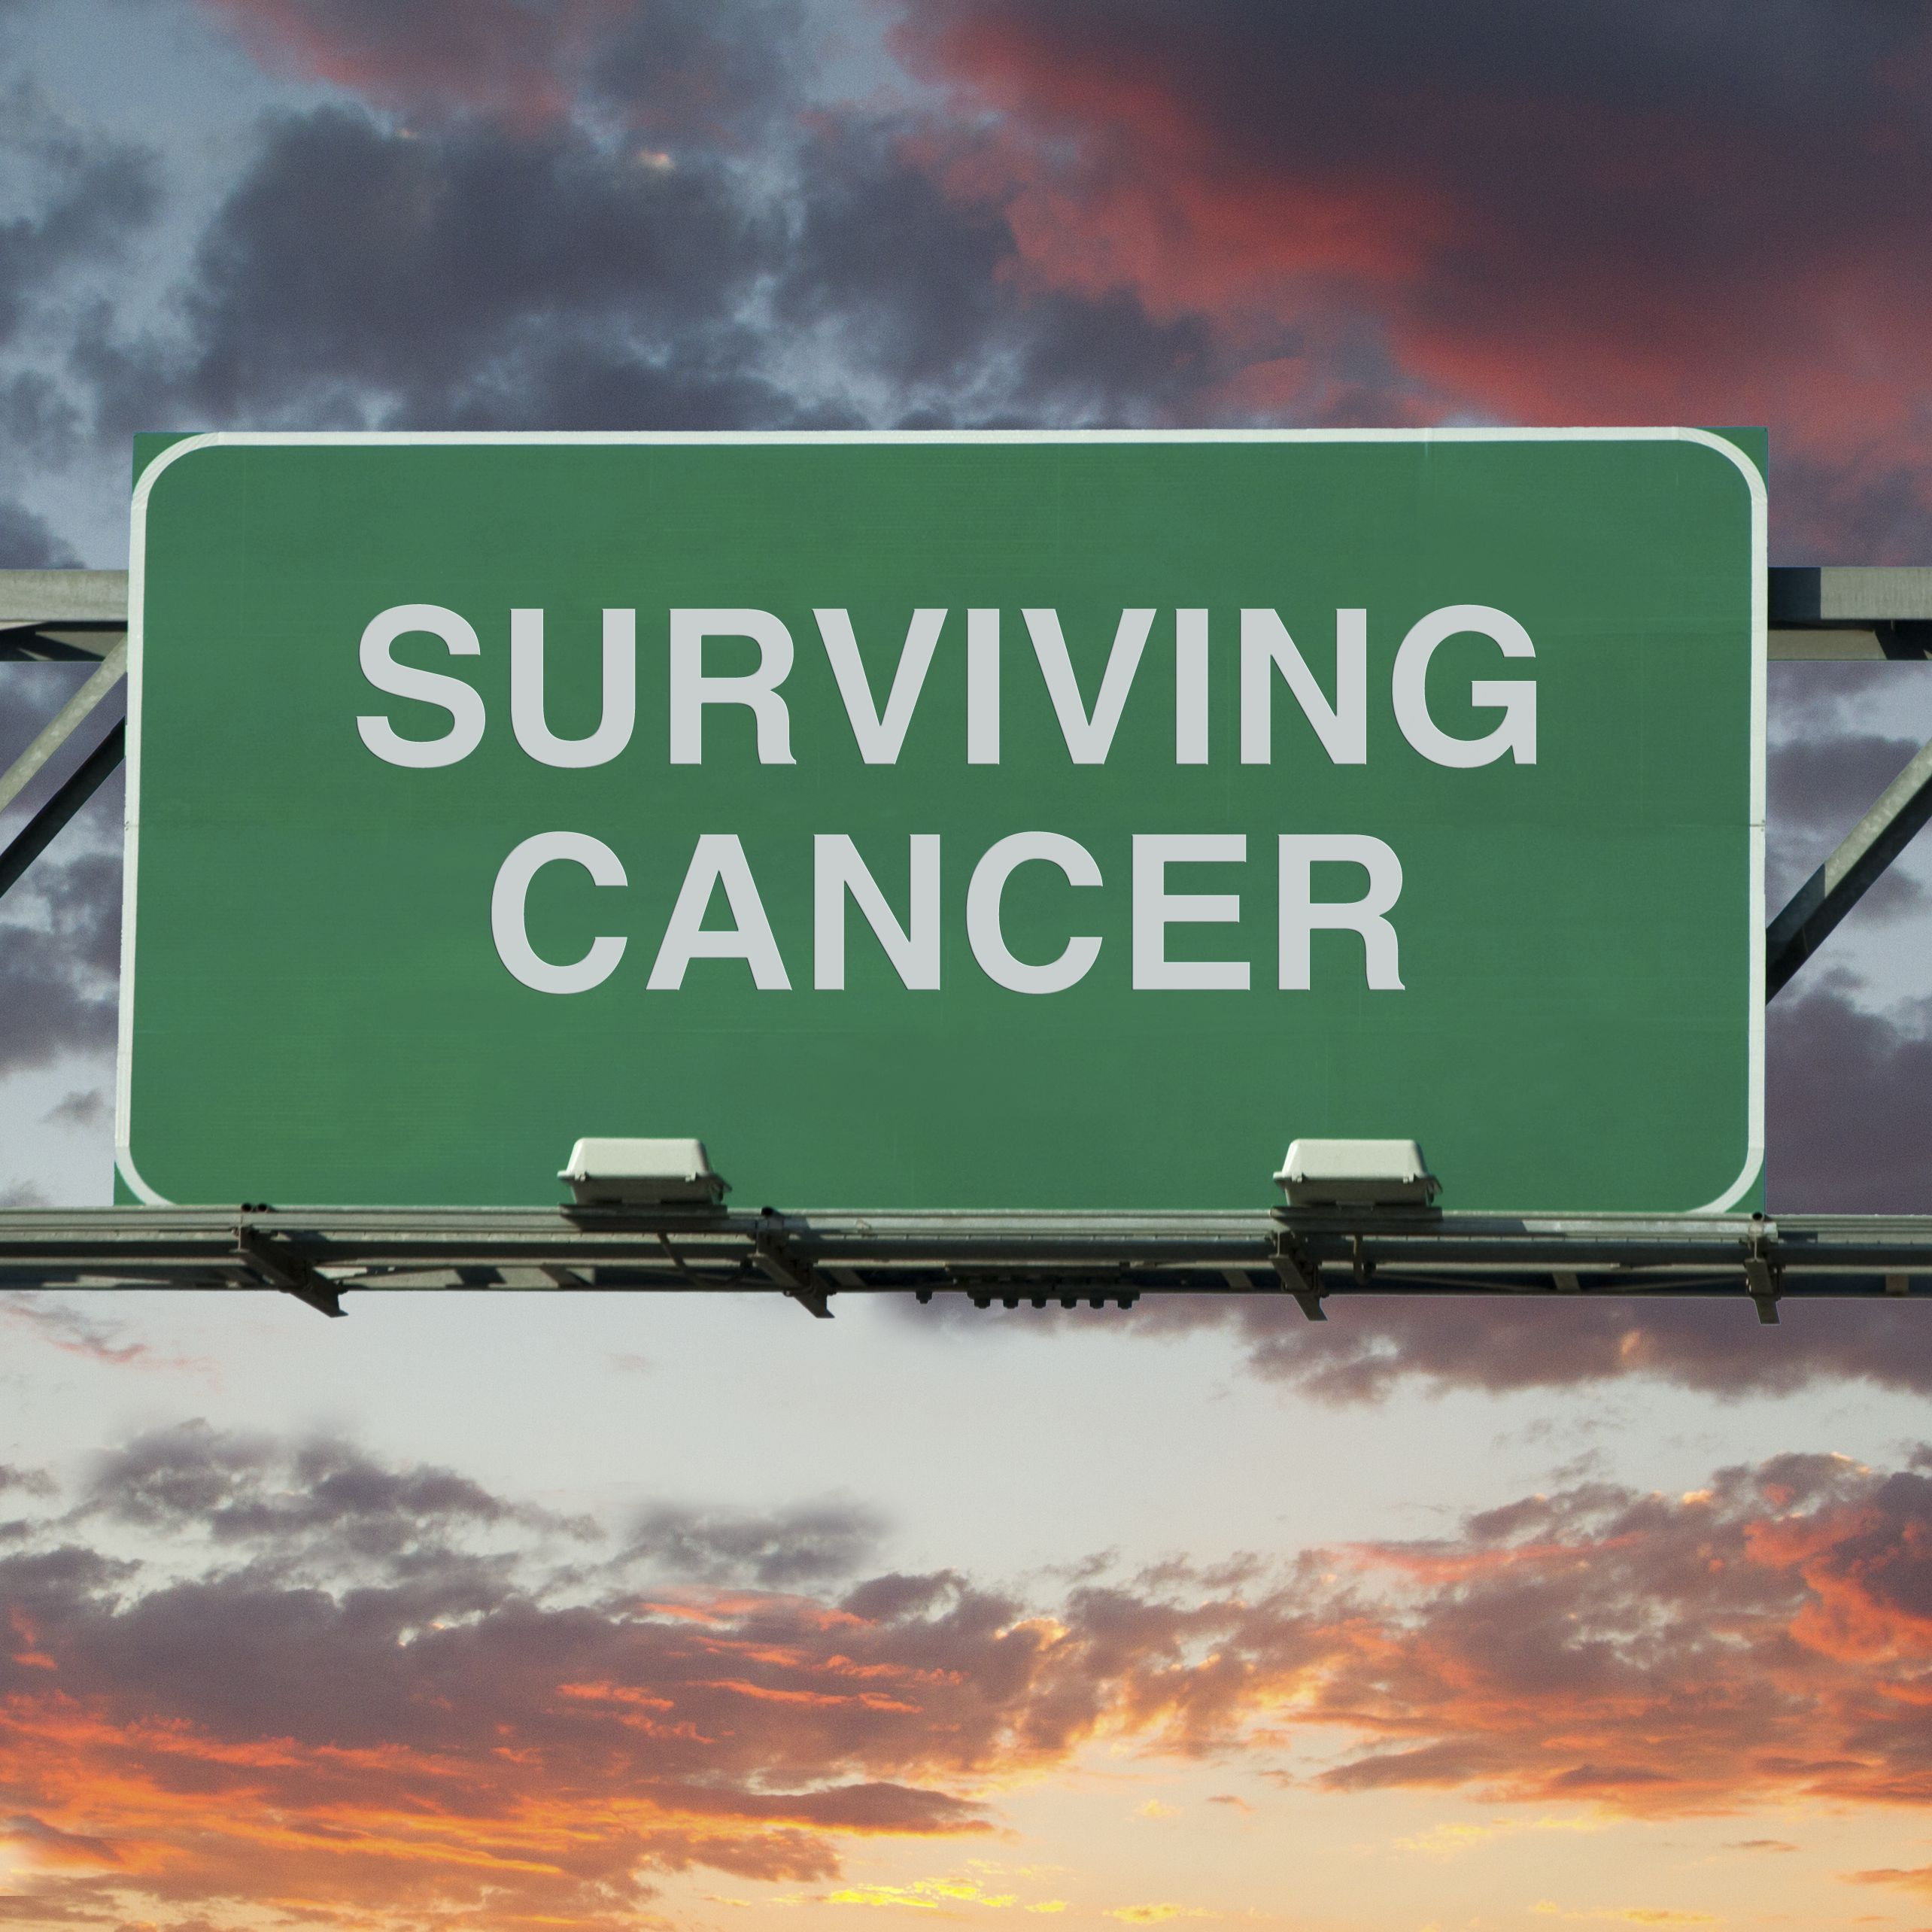 No Evidence of Disease (NED) in Breast Cancer